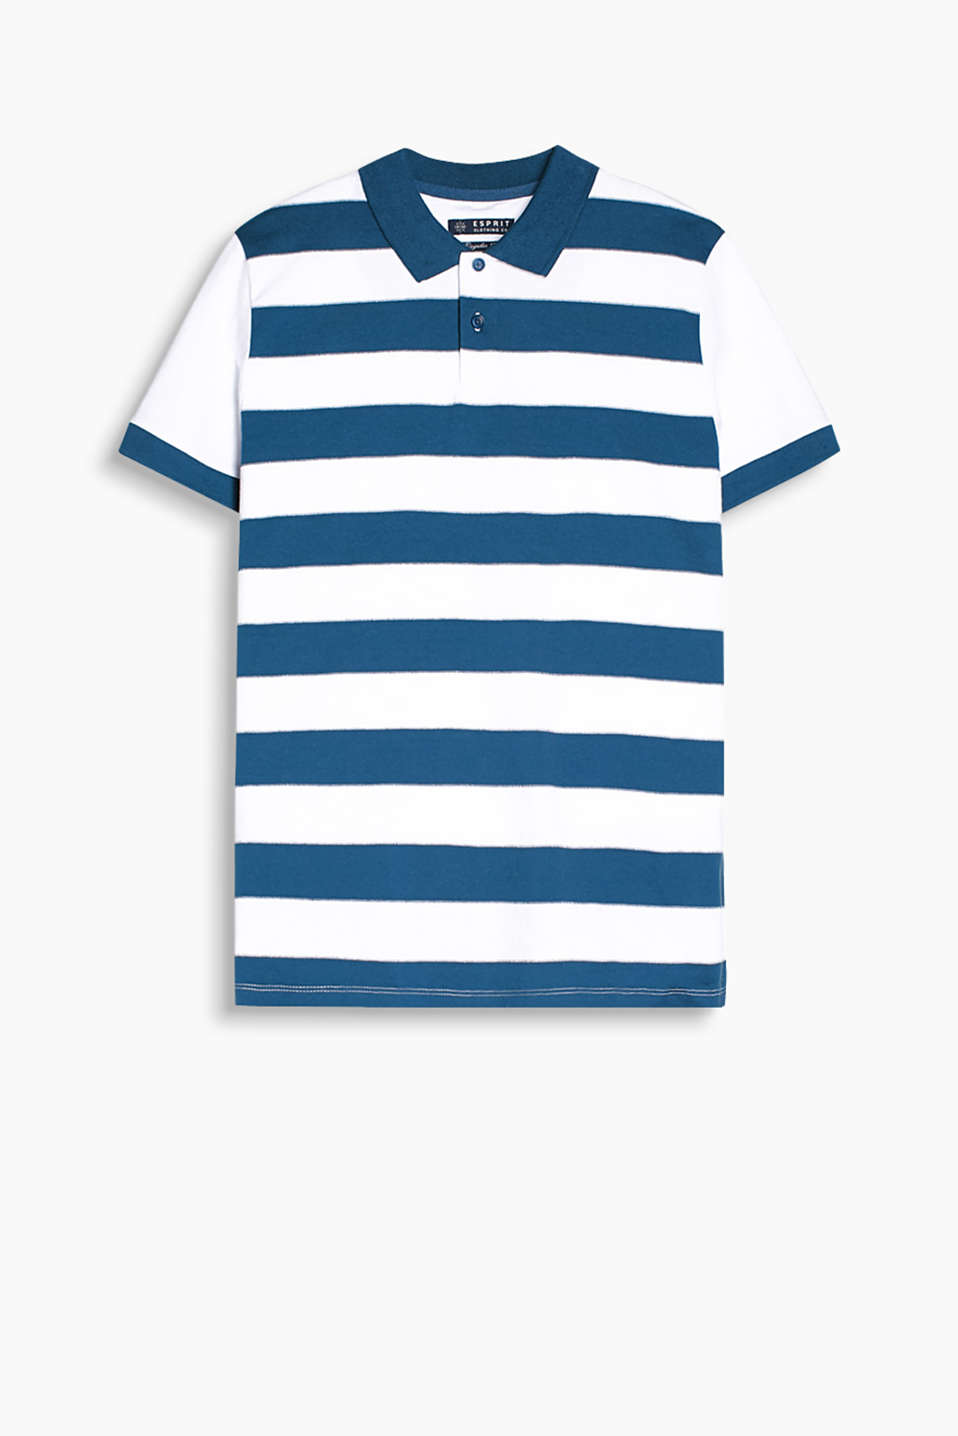 Polo shirt with decorative stitching and a nautical, striped pattern